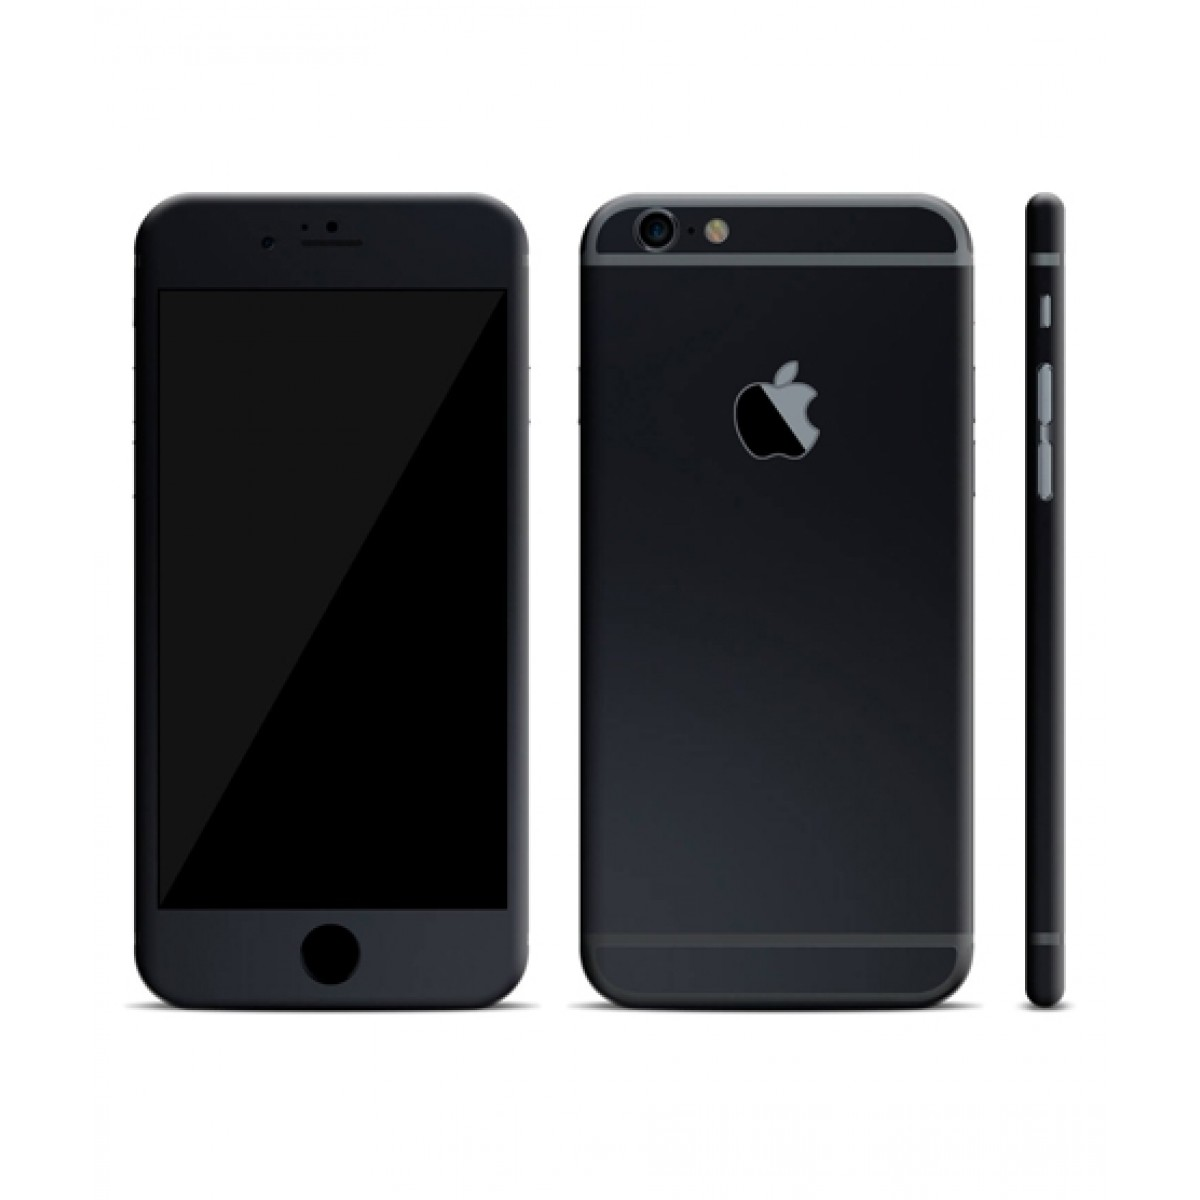 Decorators Skin Protector For Iphone 6 6s Matte Black Price In Pakistan Buy Decorators Skin Protector Matte Black Ishopping Pk